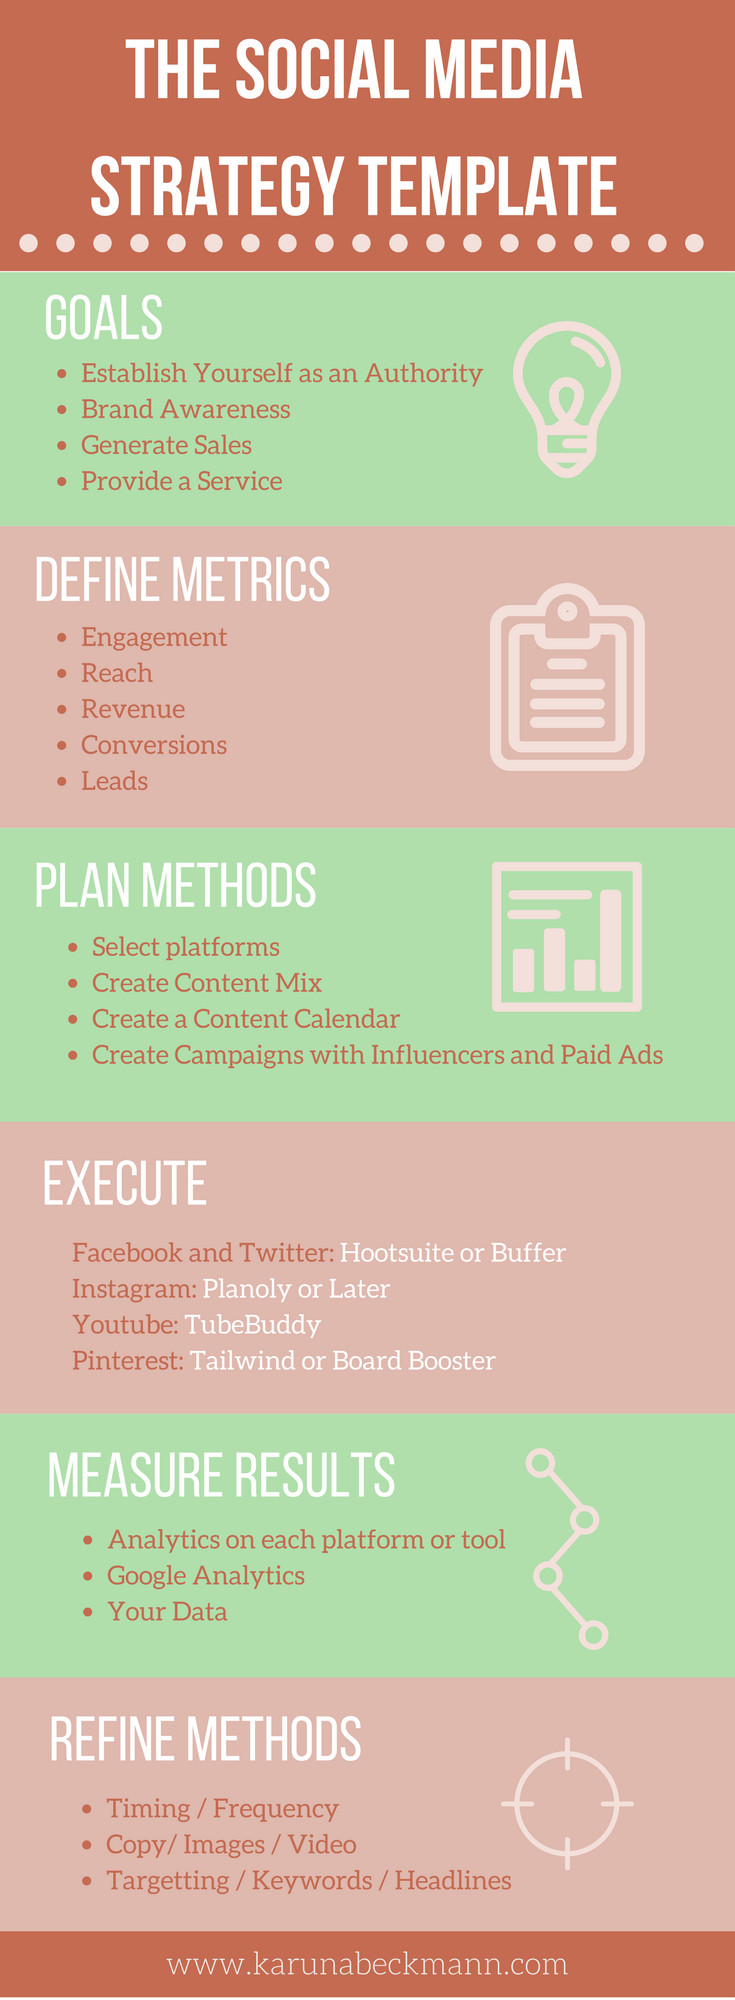 The-Social-Media-Strategy-Template.png